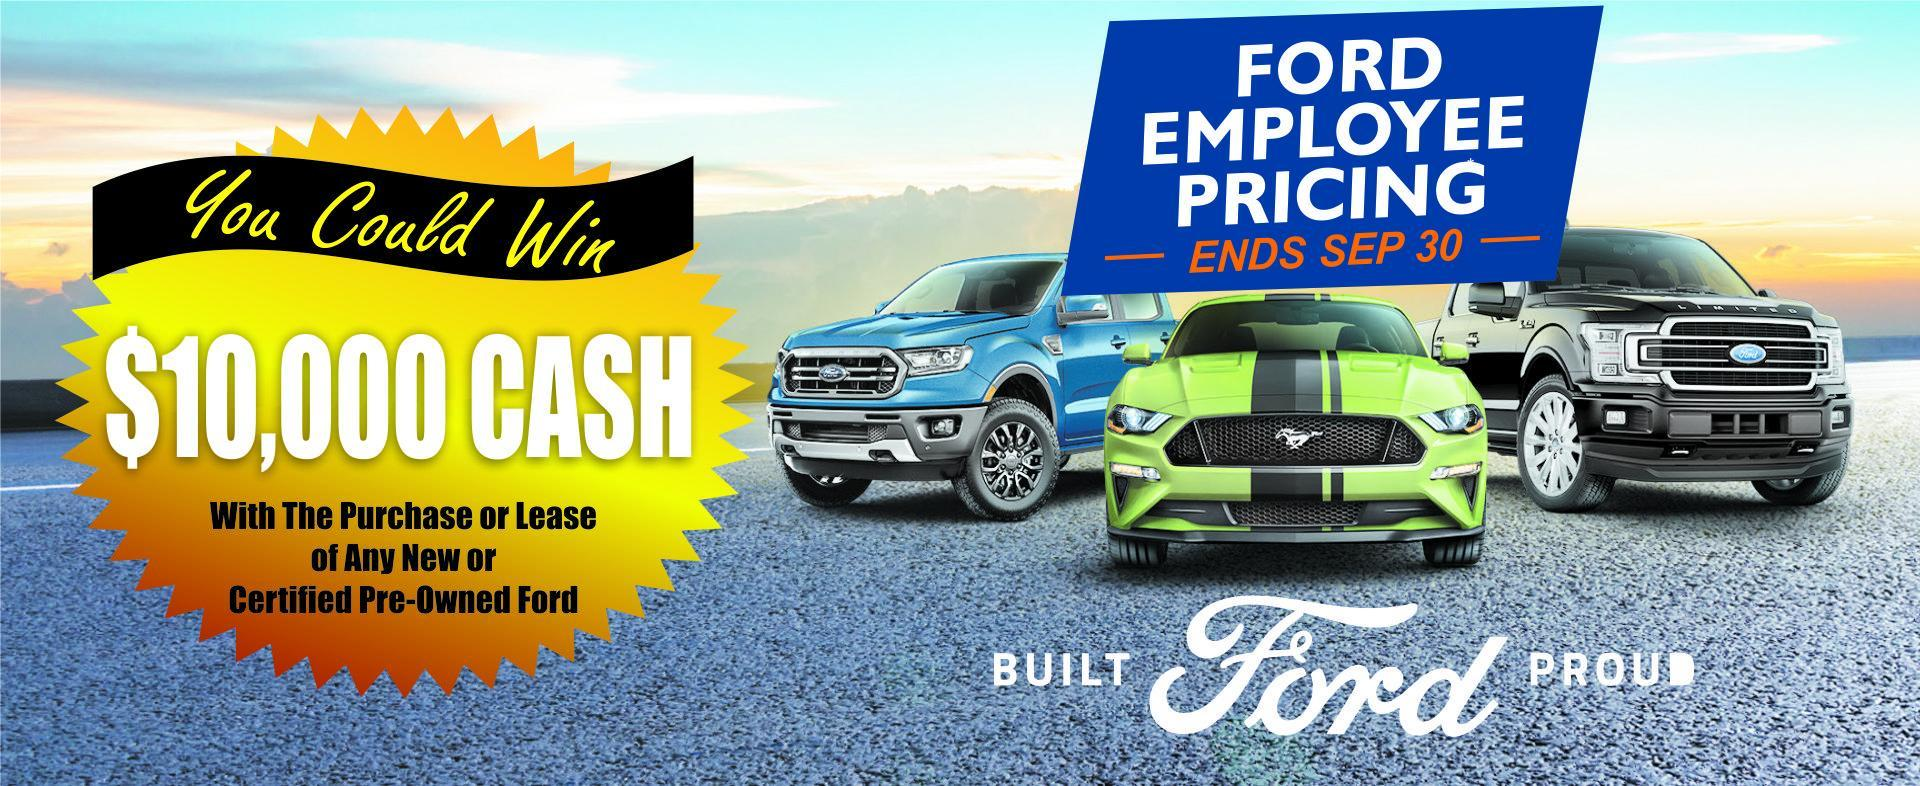 FORD EMPLOYEE PRICING EVENT DRAYTON VALLEY ALBERTA